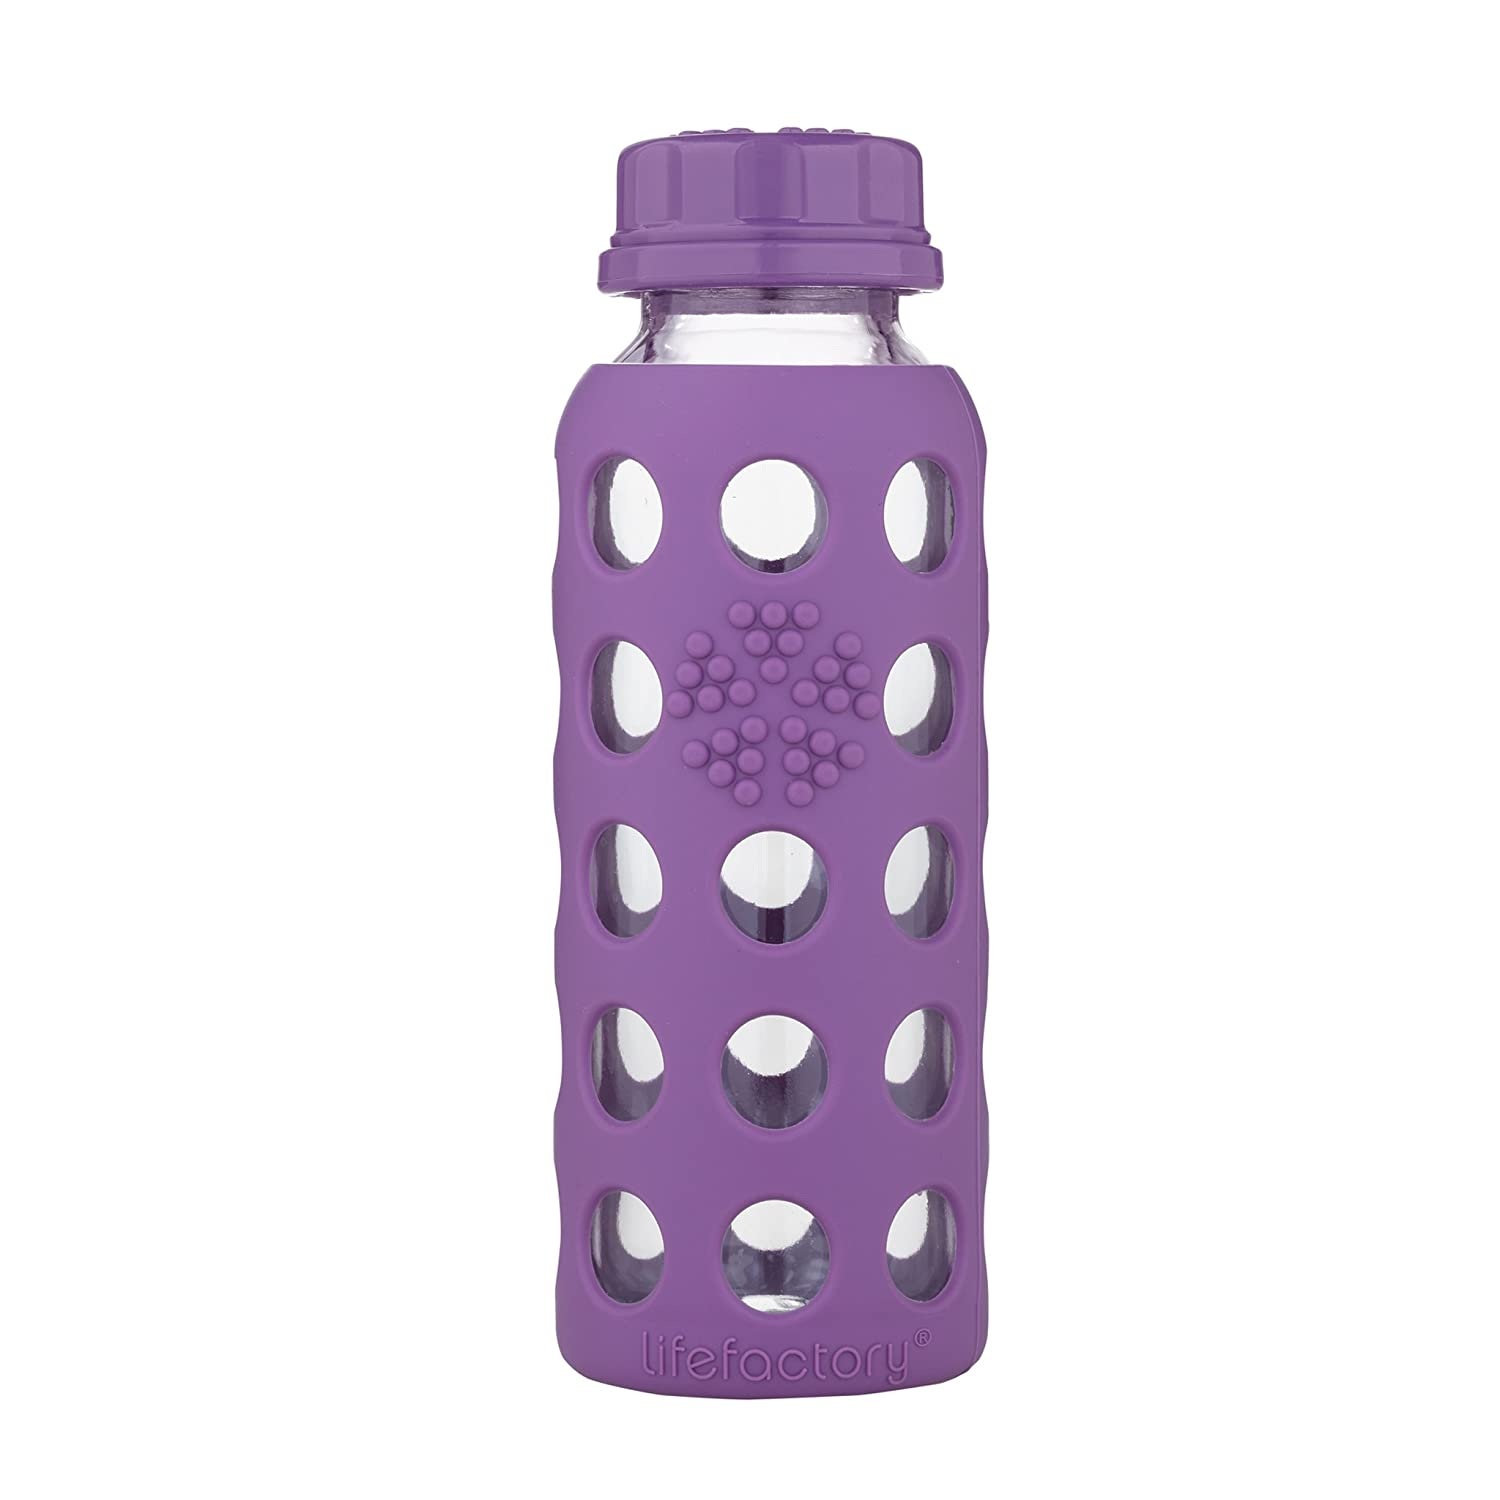 Lifefactory Glass Bottle with Flat Cap, 260 ml, Grape Forma House Ltd LF210014C4